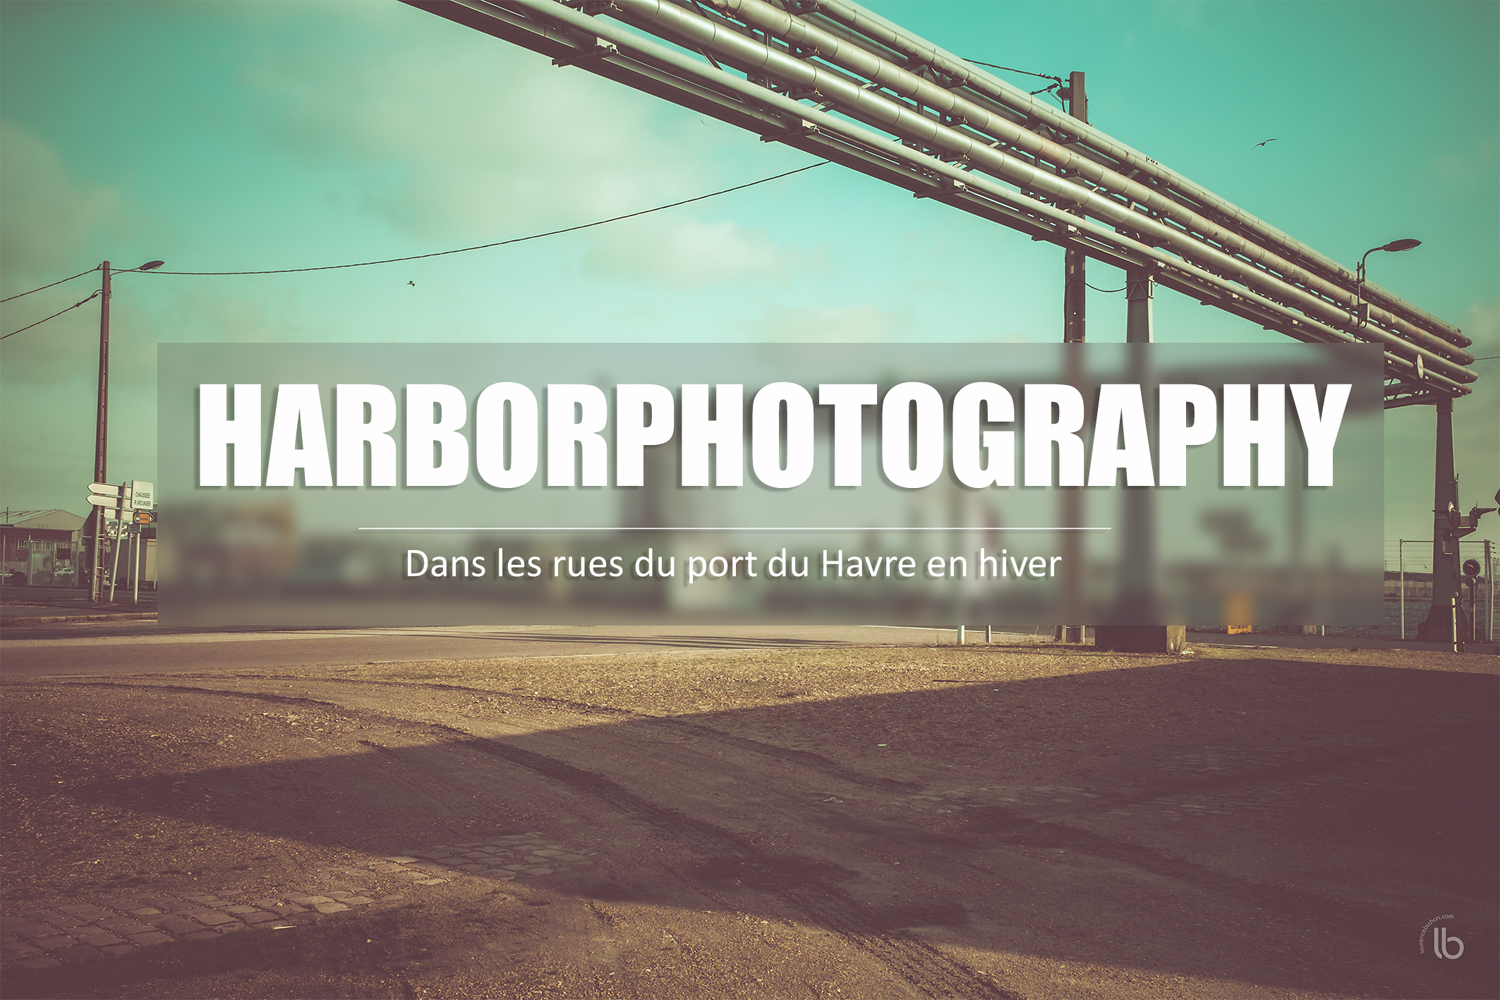 harborphotography in le havre by laurence bichon